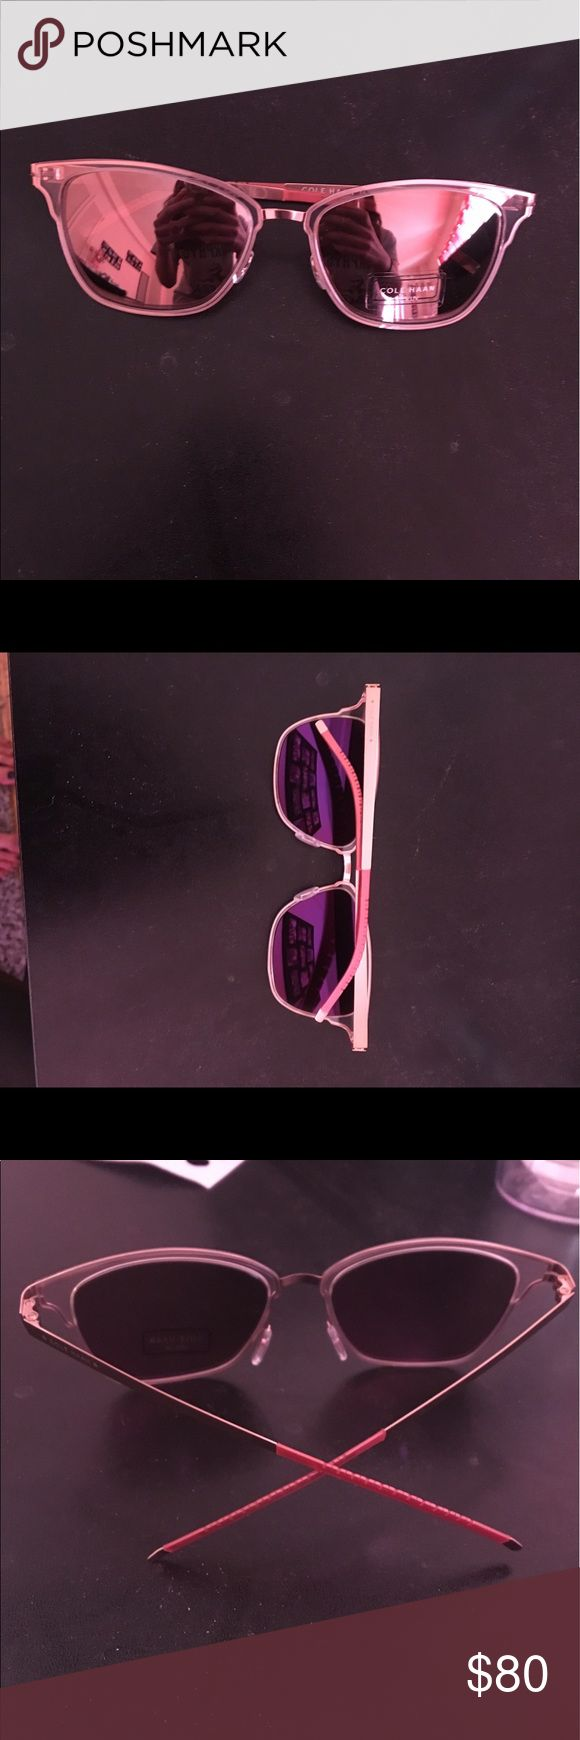 Cole Haan StudioGrand Women's Mirrored Sunglasses Never worn Cole Haan StudioGrqnd women's sunglasses. Style CH7028 color blush with mirrored lenses and flexible temples. Pink deigns on ends of temples and comes with blue Cole Haan case. Cole Haan Accessories Sunglasses